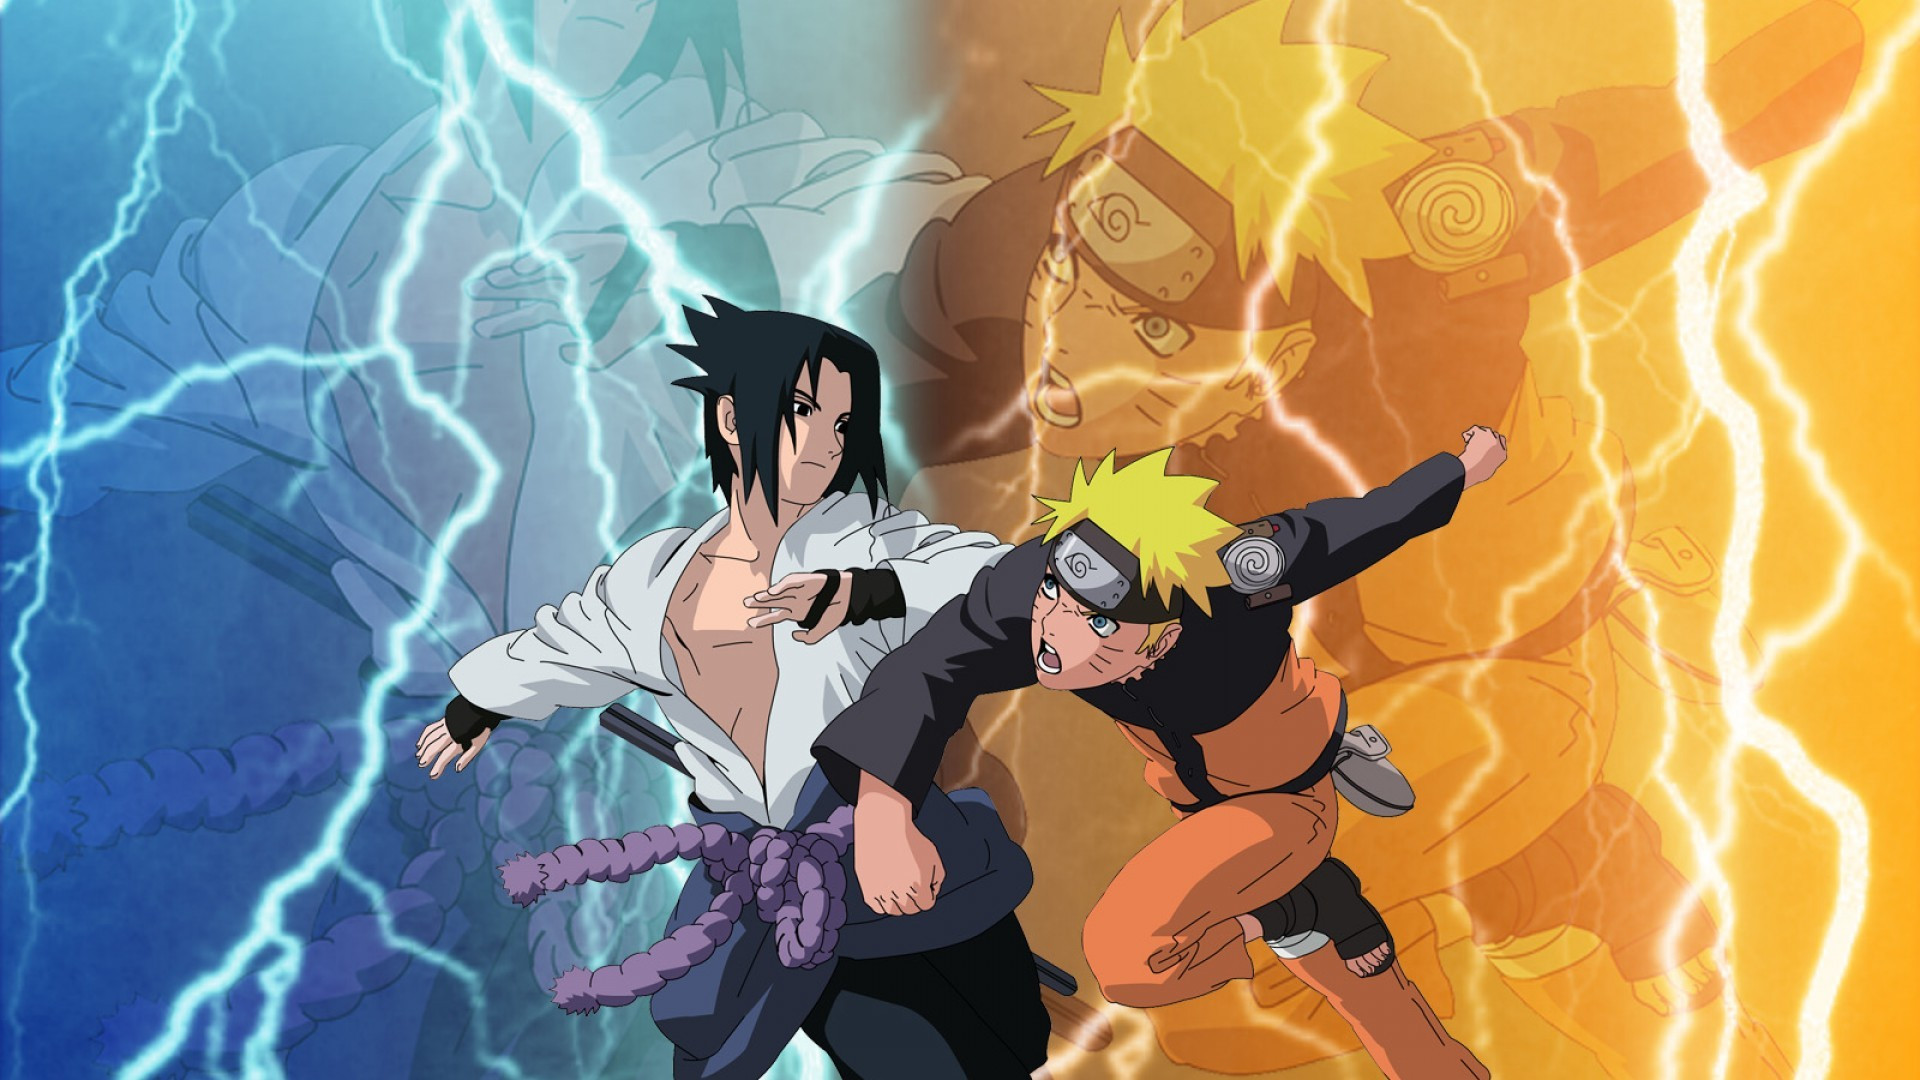 Naruto Shippuden Cell Phone Wallpapers 2018 69 Background Pictures